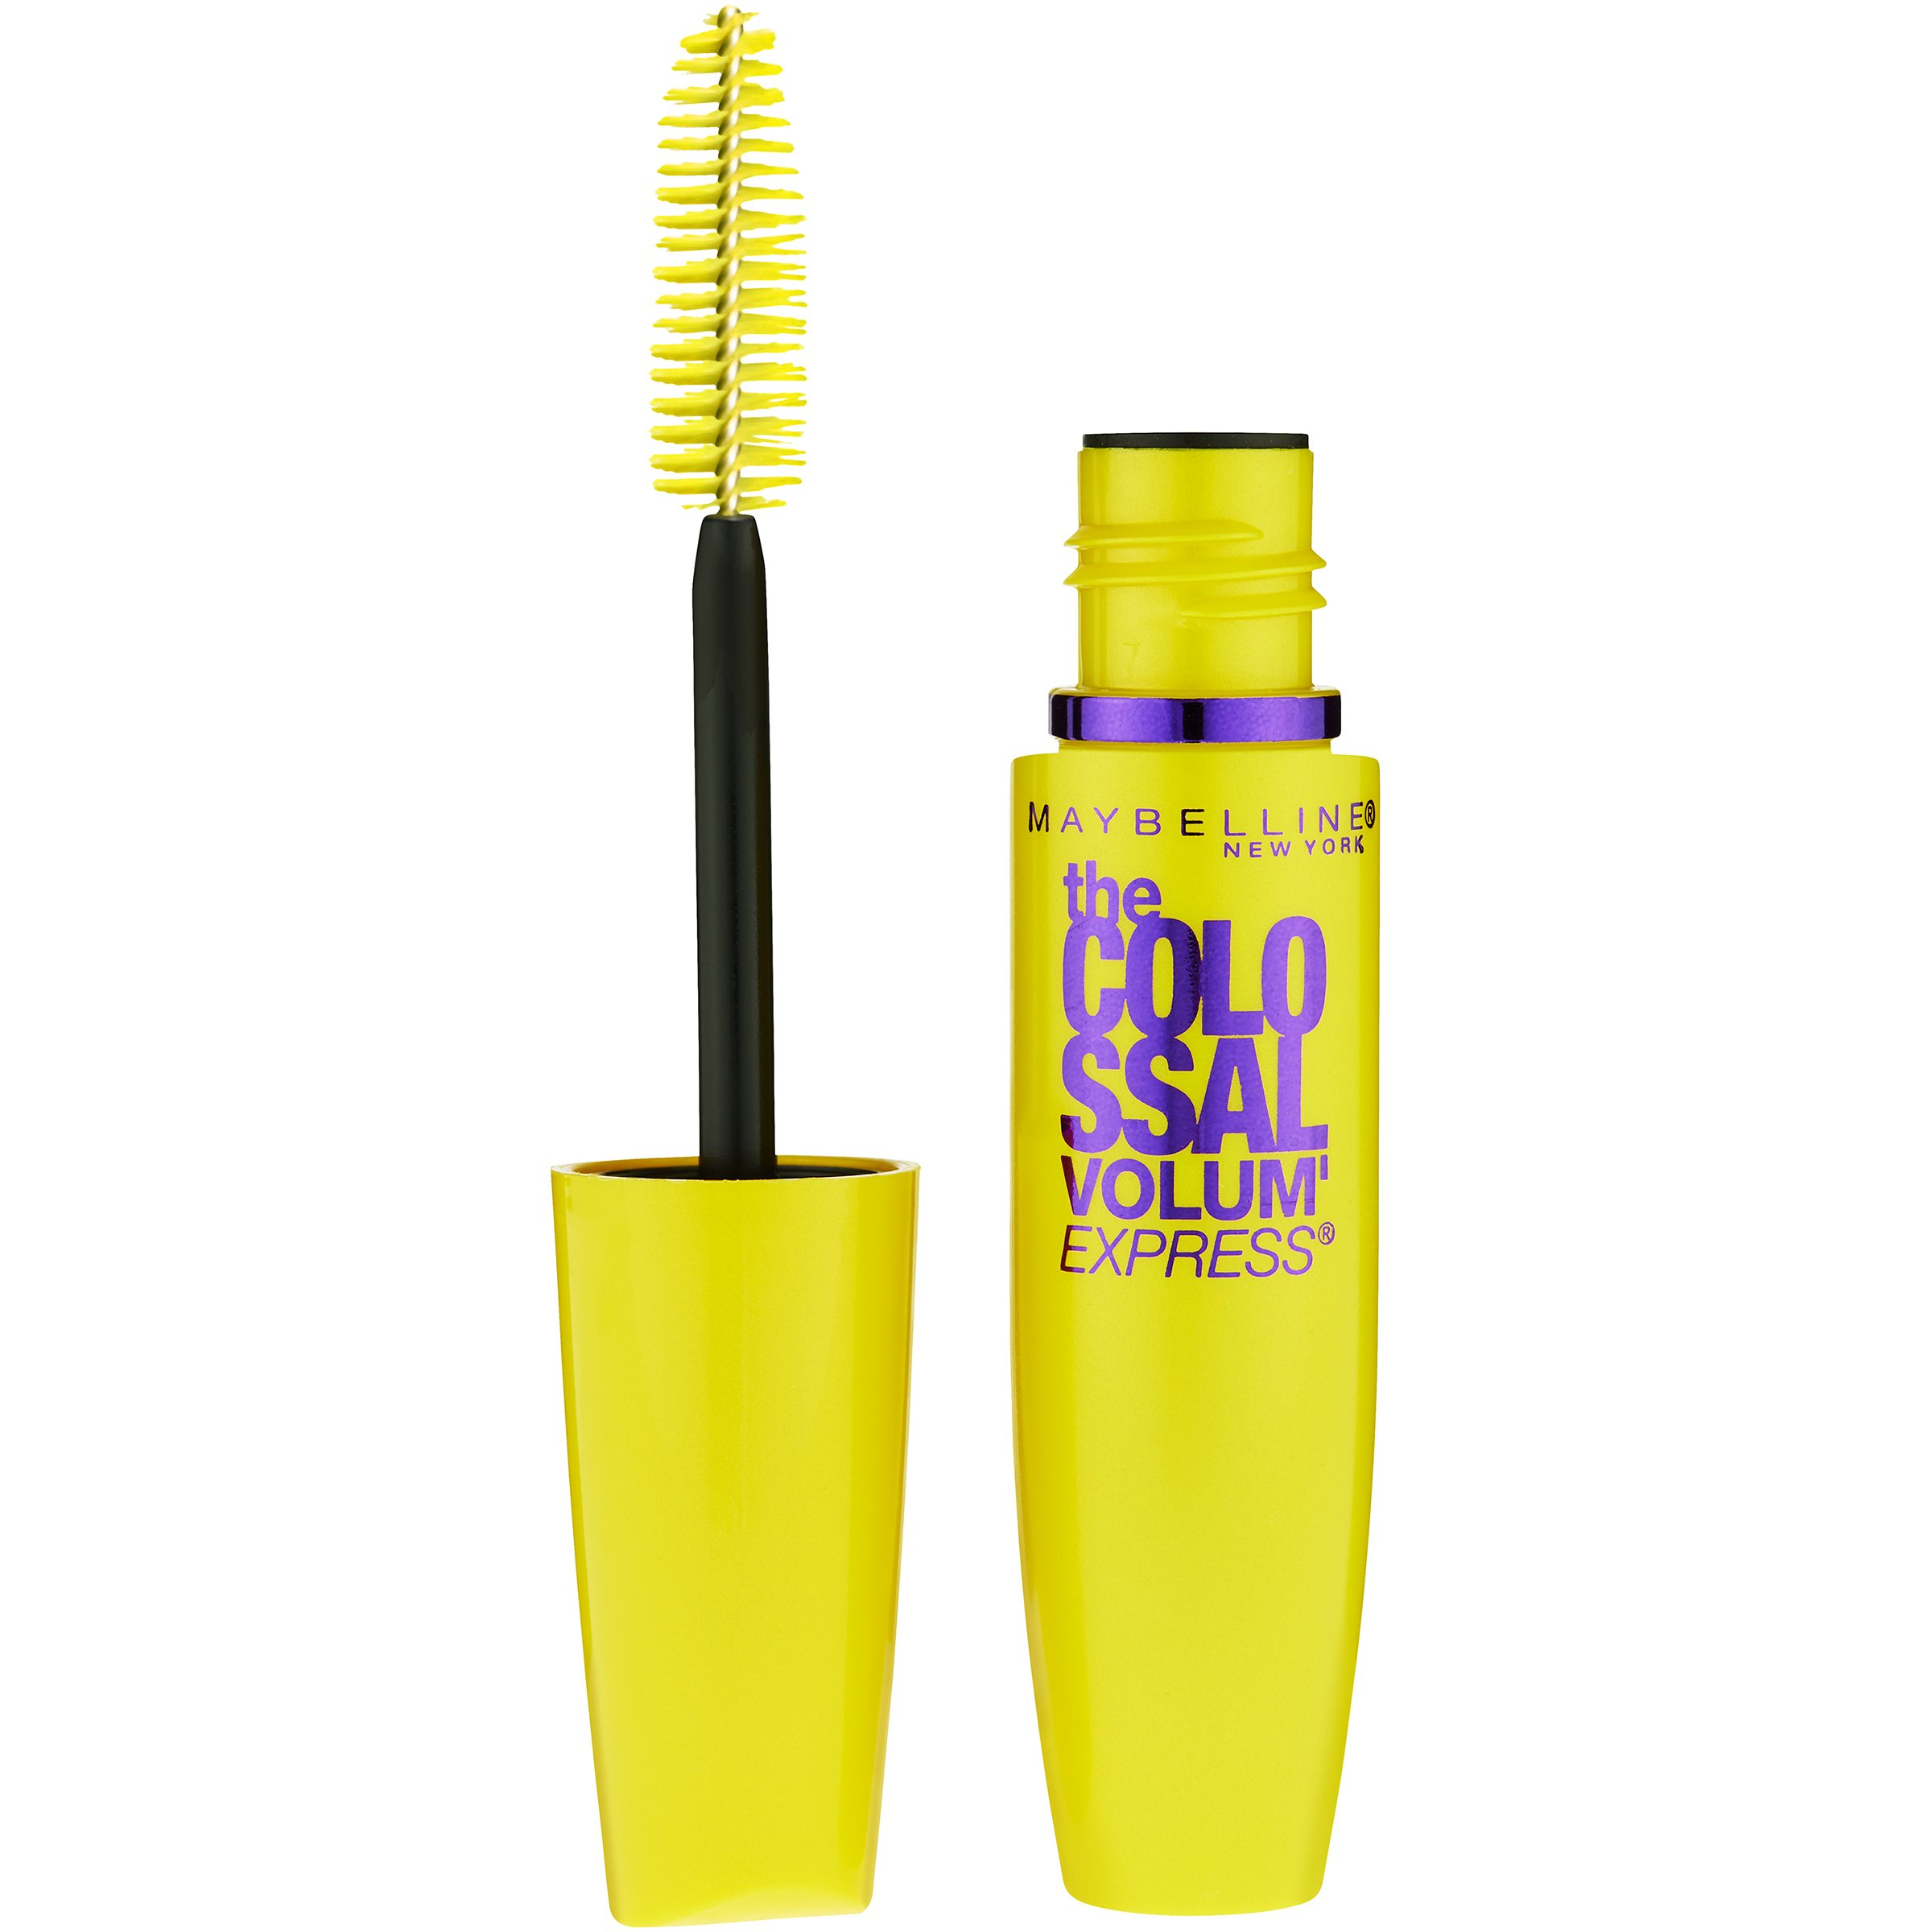 bc107d2863b Get Quotations · Maybelline Makeup Volum' Express The Colossal Washable  Mascara, Glam Black Mascara, 0.31 fl